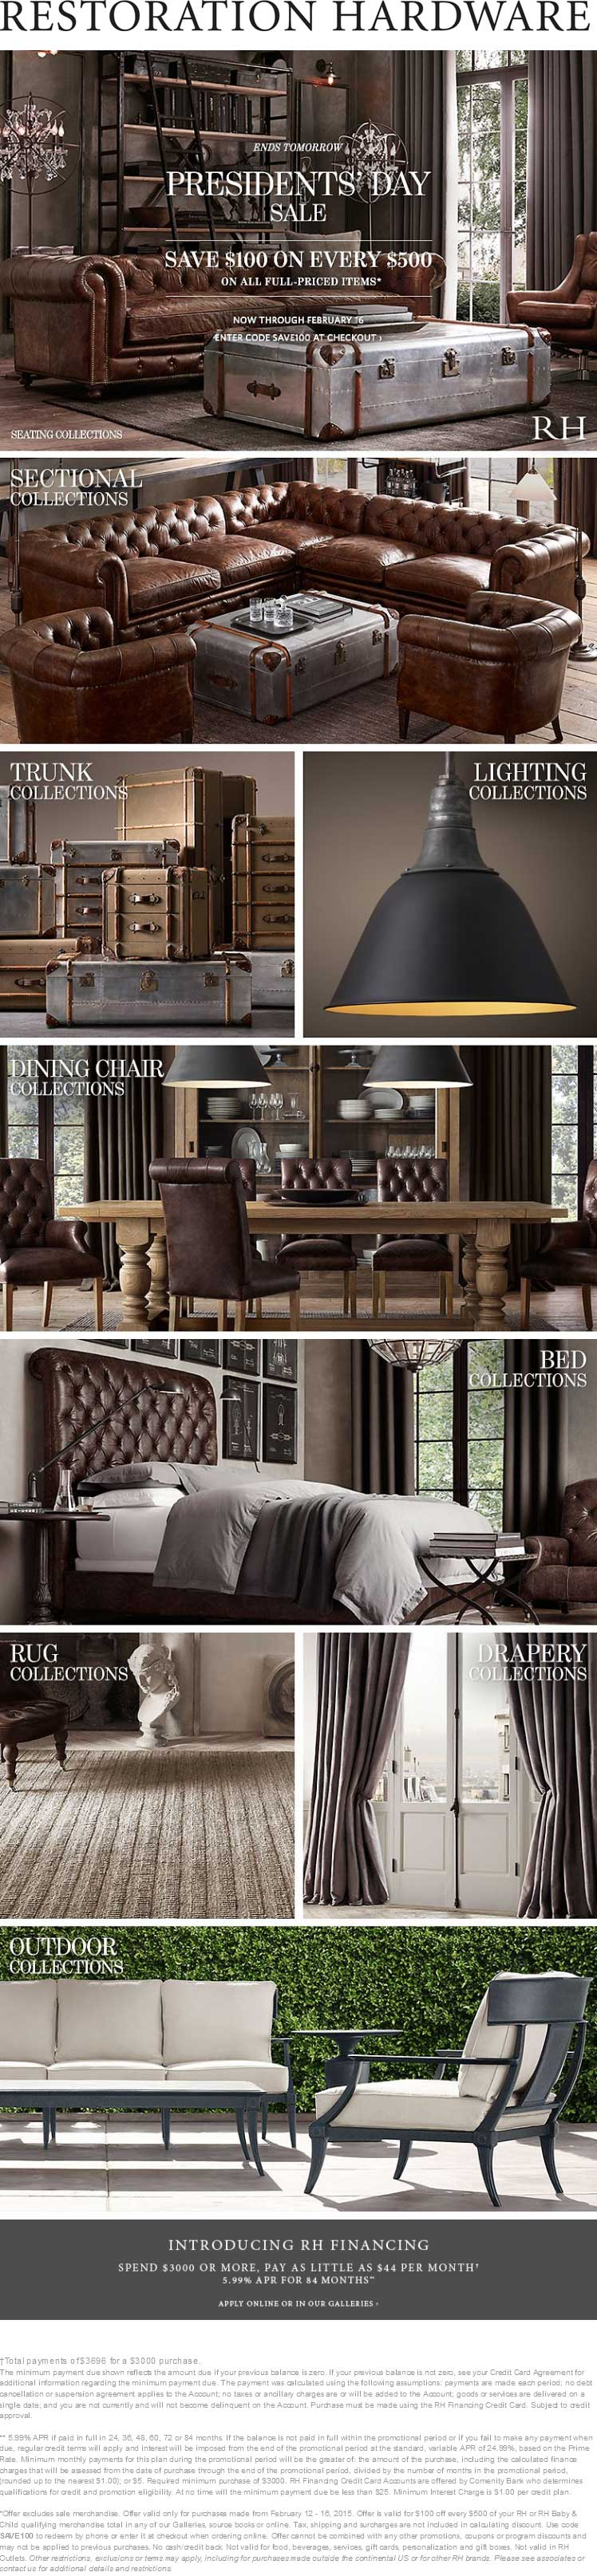 Restoration Hardware Coupon October 2016 $100 off every $500 today at Restoration Hardware, or online via promo code SAVE100